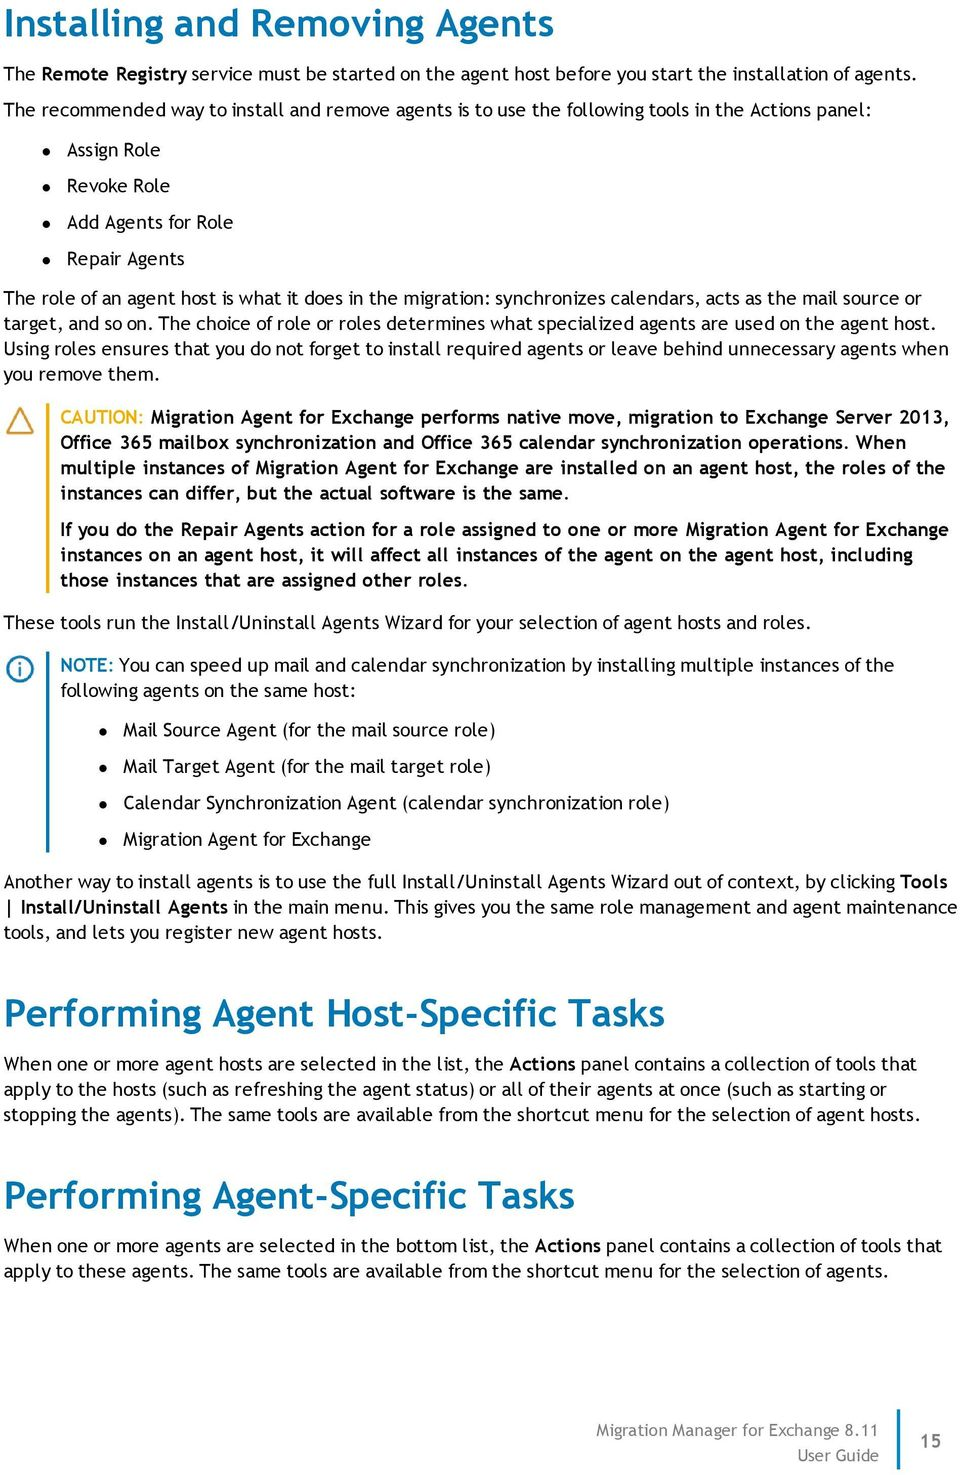 does in the migration: synchronizes calendars, acts as the mail source or target, and so on. The choice of role or roles determines what specialized agents are used on the agent host.